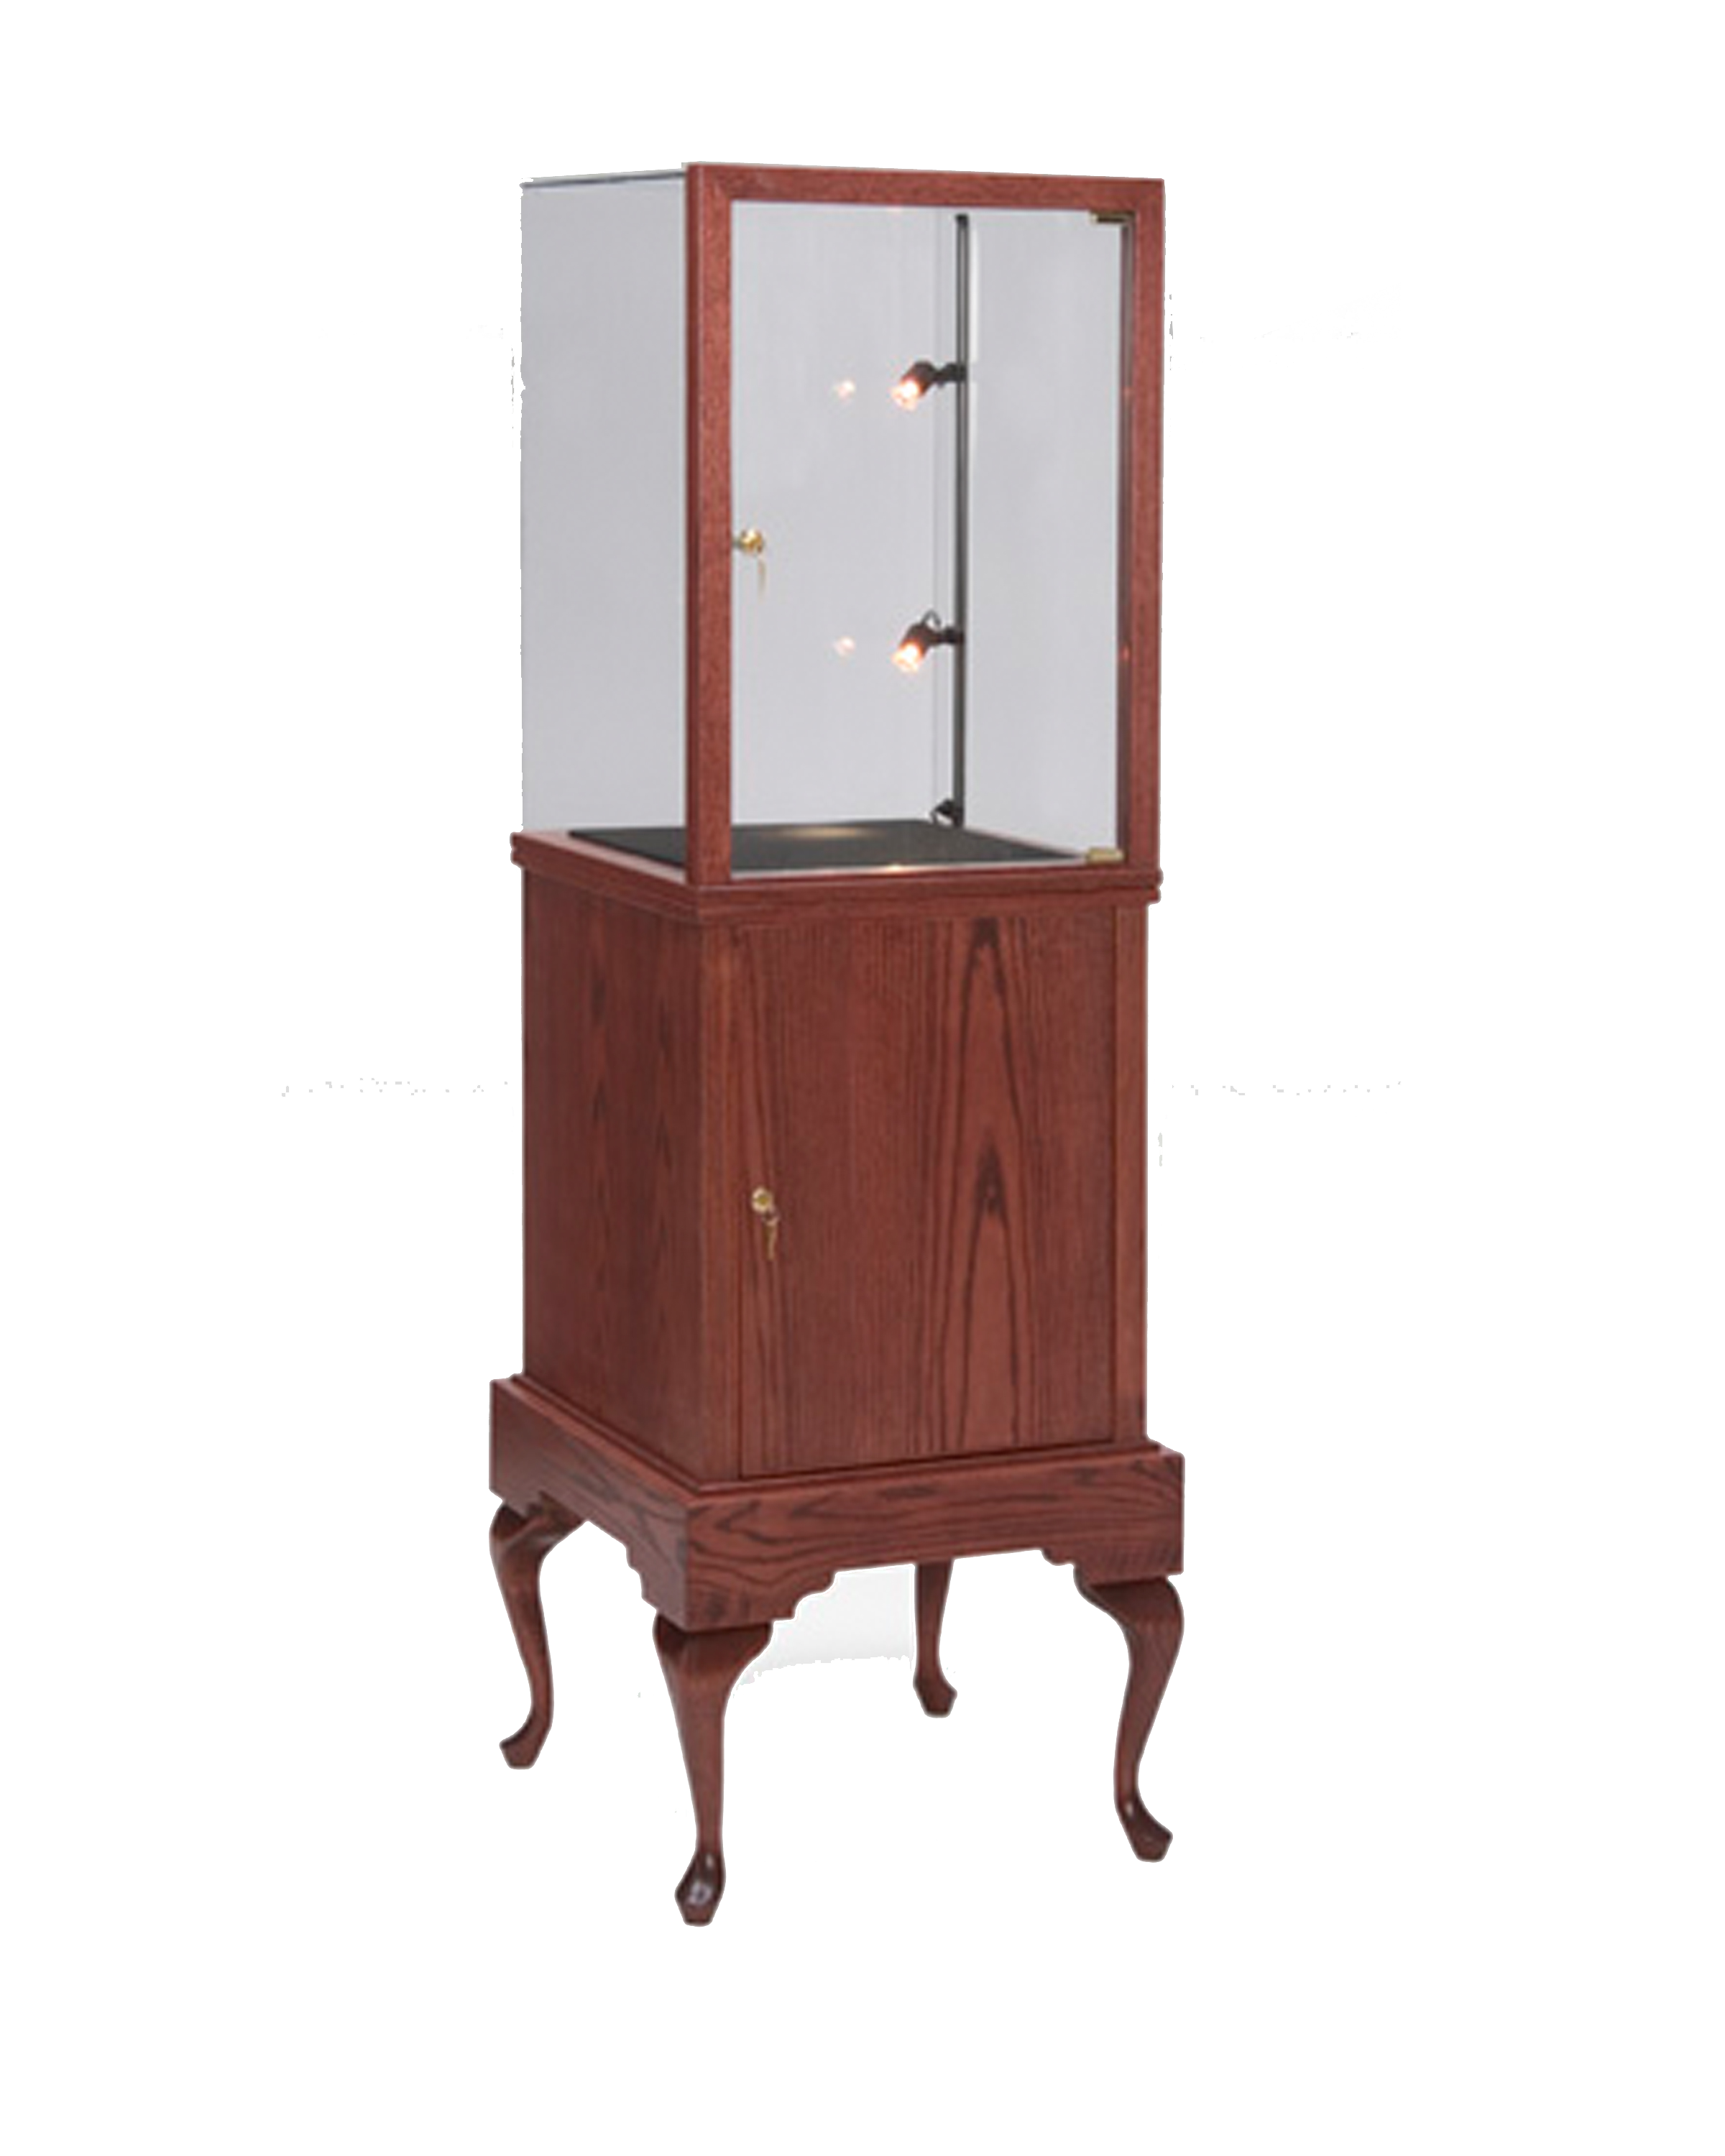 custom display furniture retail. Queen Anne Style Of Display Cases Are Designed To Match The Elegance Jewelry That It Is Displaying. Retail Stores Often Choose Custom Furniture